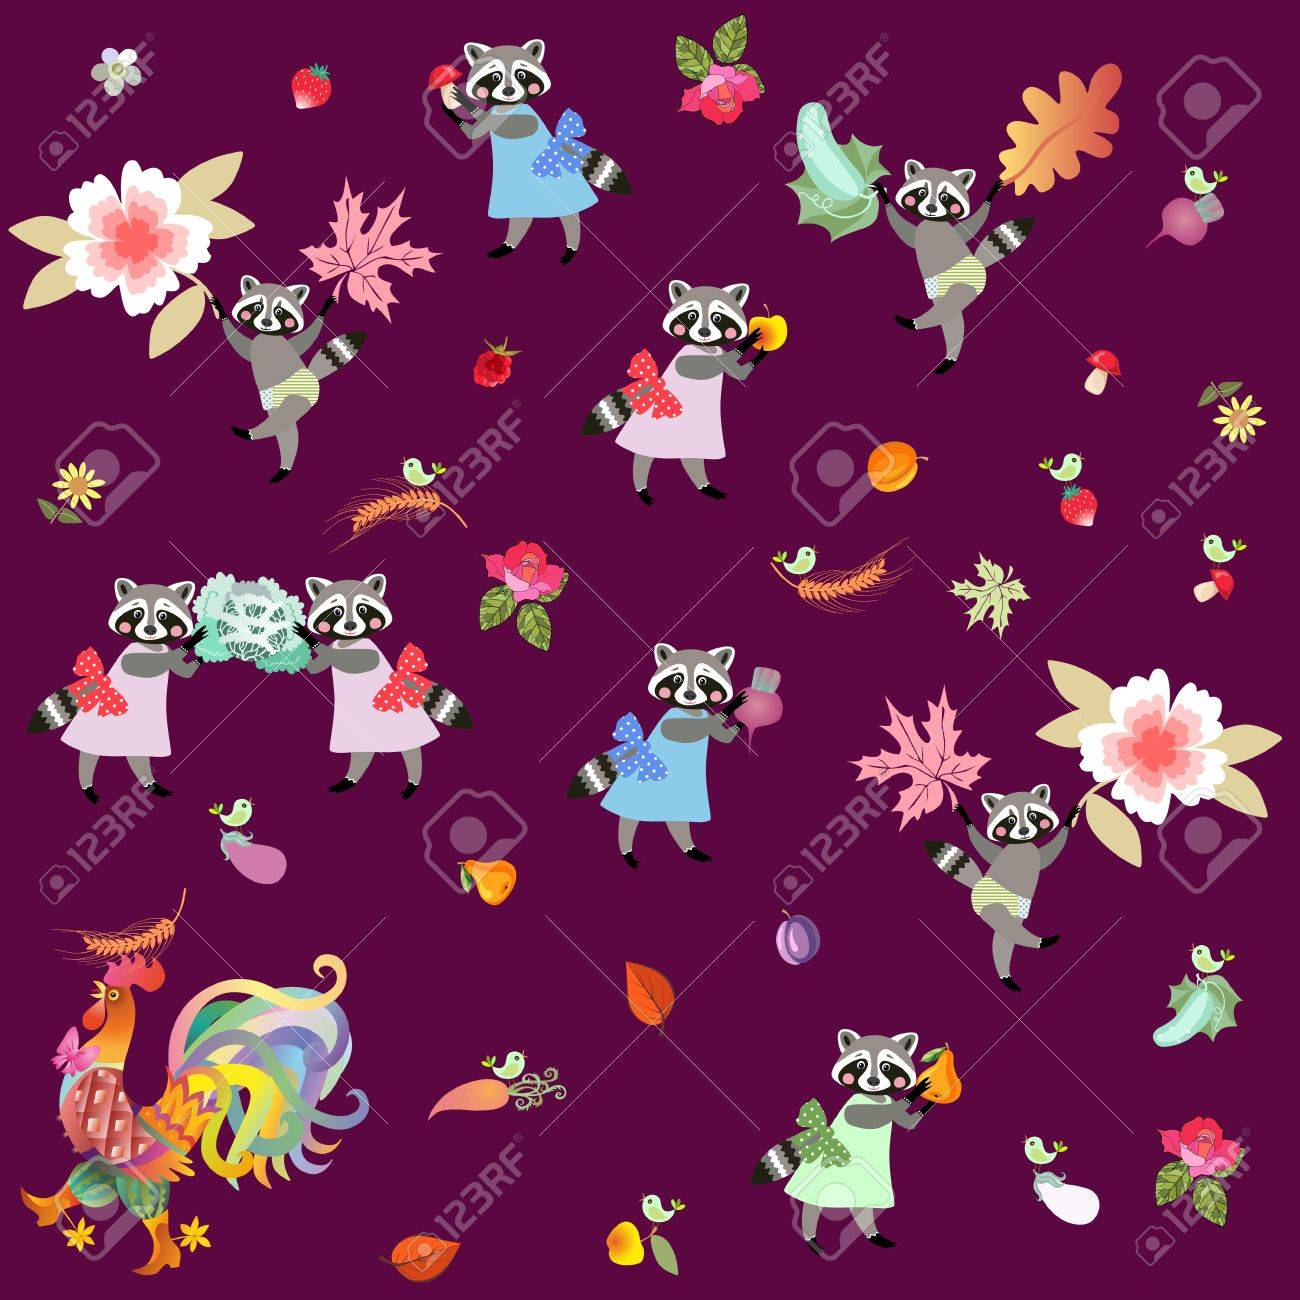 Fairy Tale Endless Pattern With Cute Cartoon Characters Raccoons Cockerel And Little